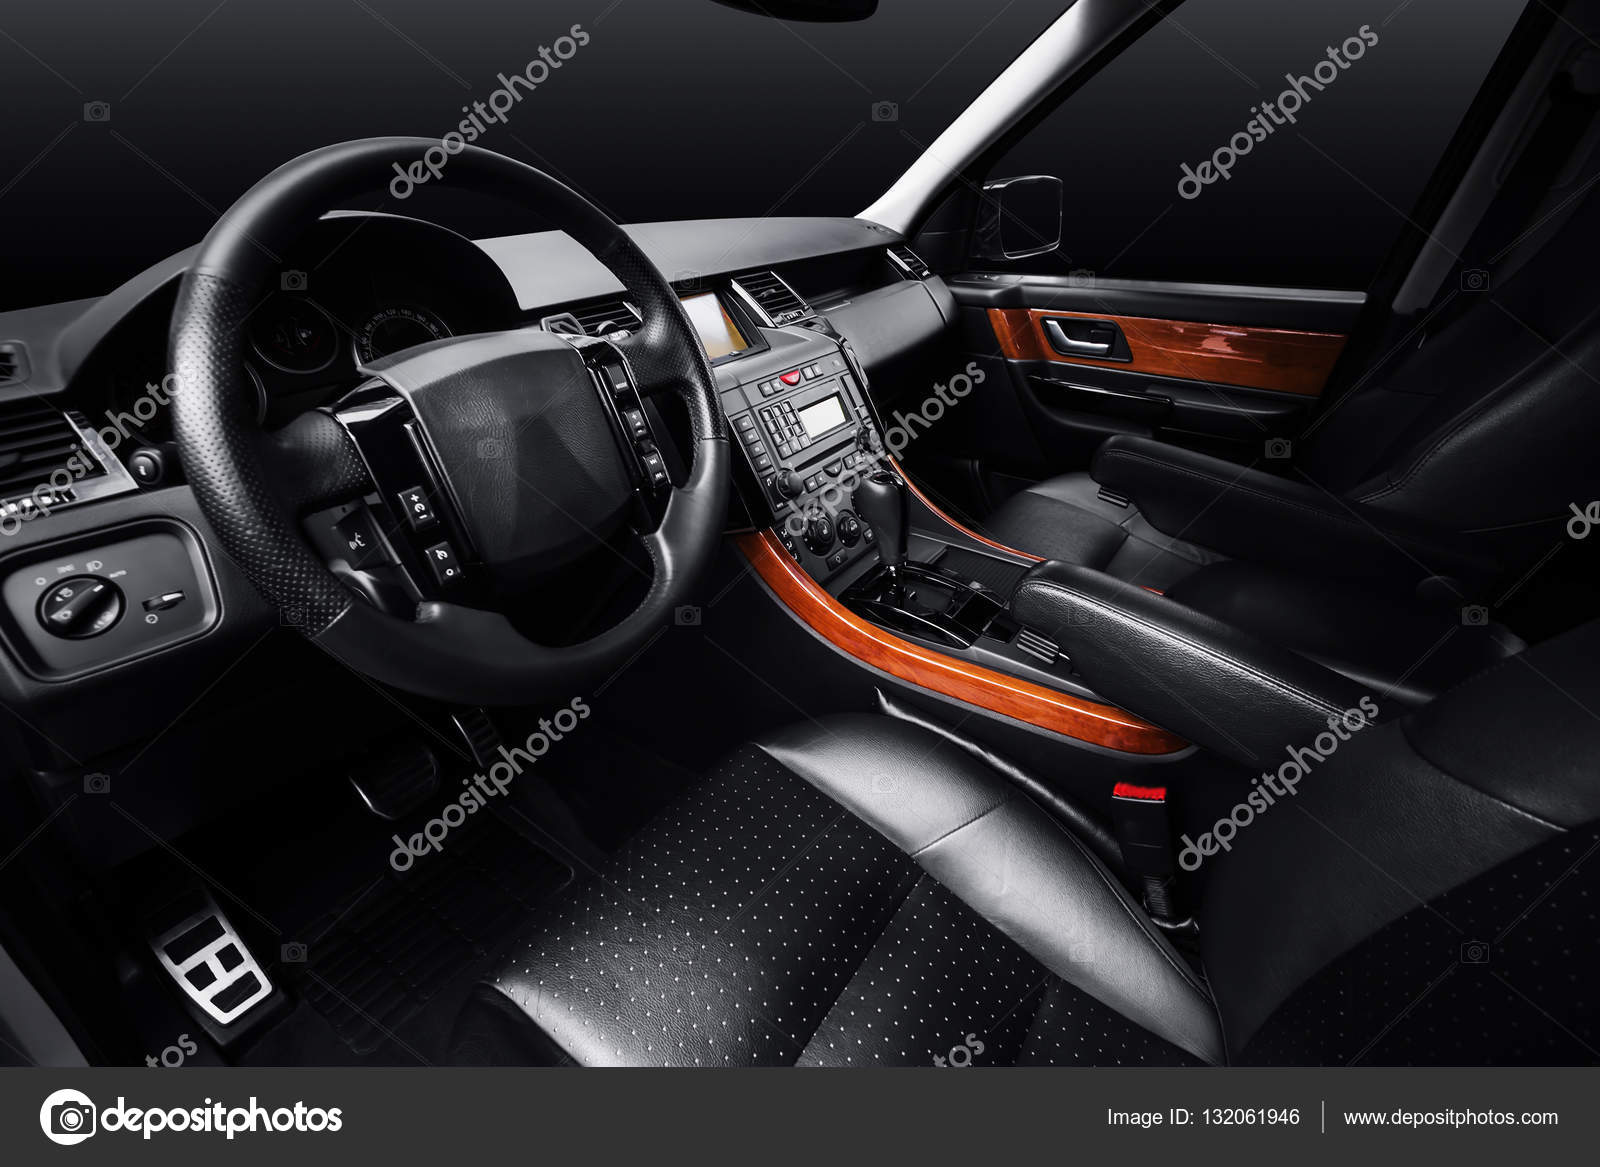 https://st3.depositphotos.com/4028173/13206/i/1600/depositphotos_132061946-stock-photo-luxury-car-leather-interior-black.jpg